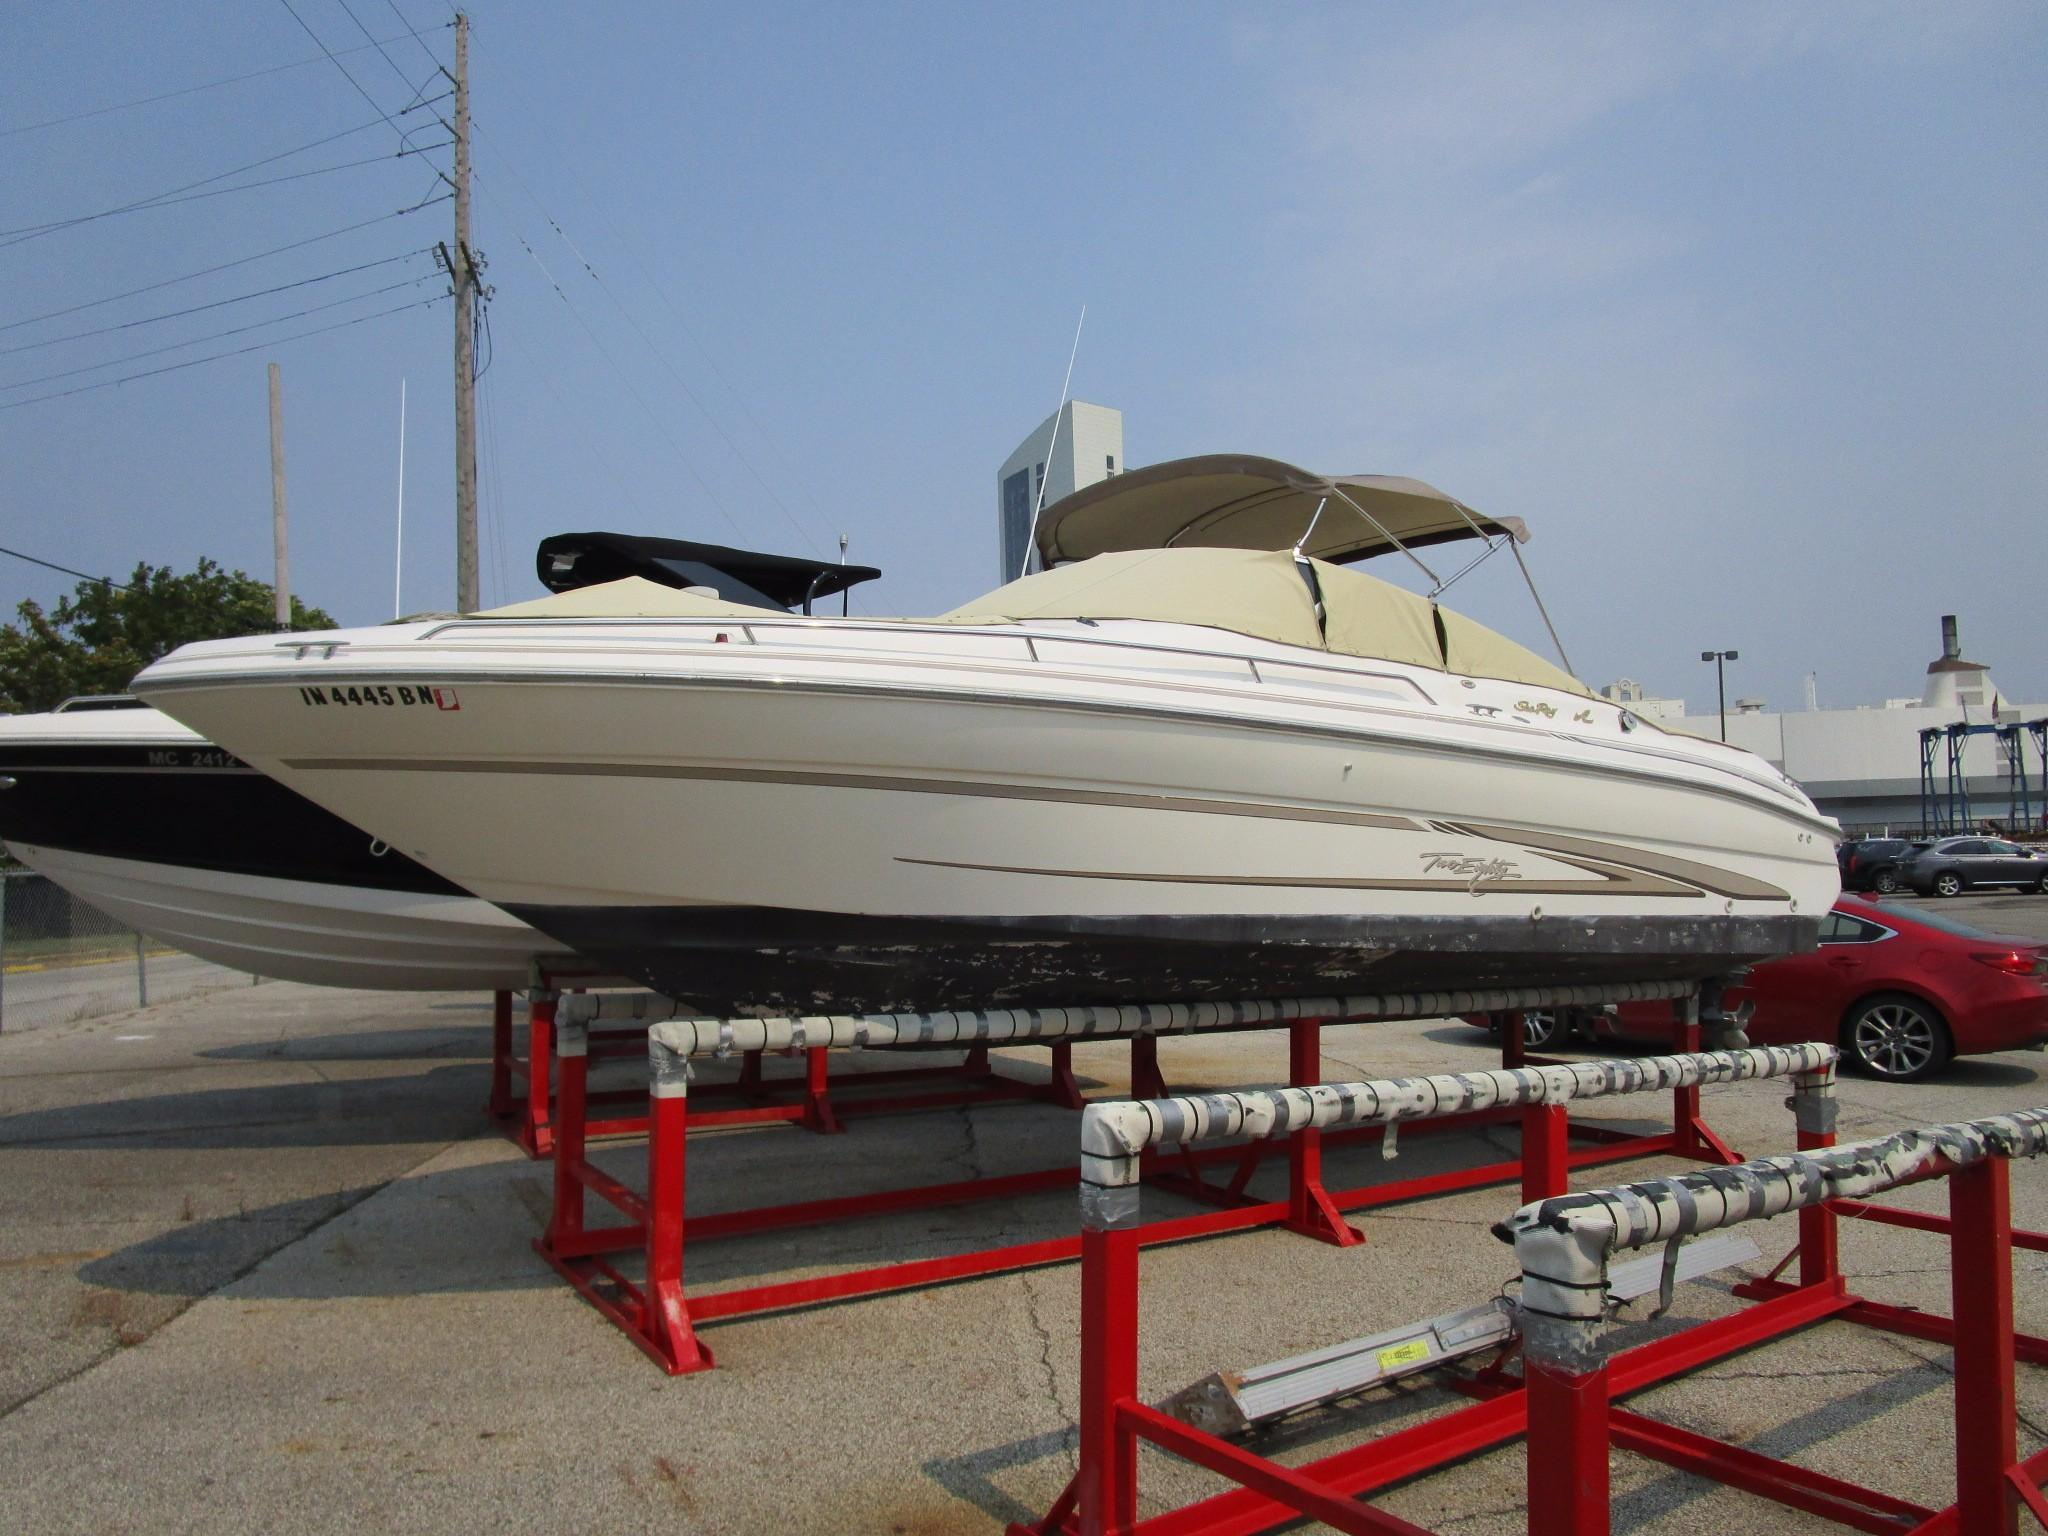 1996 Sea Ray 280 Bow Rider Power Boat For Sale Www